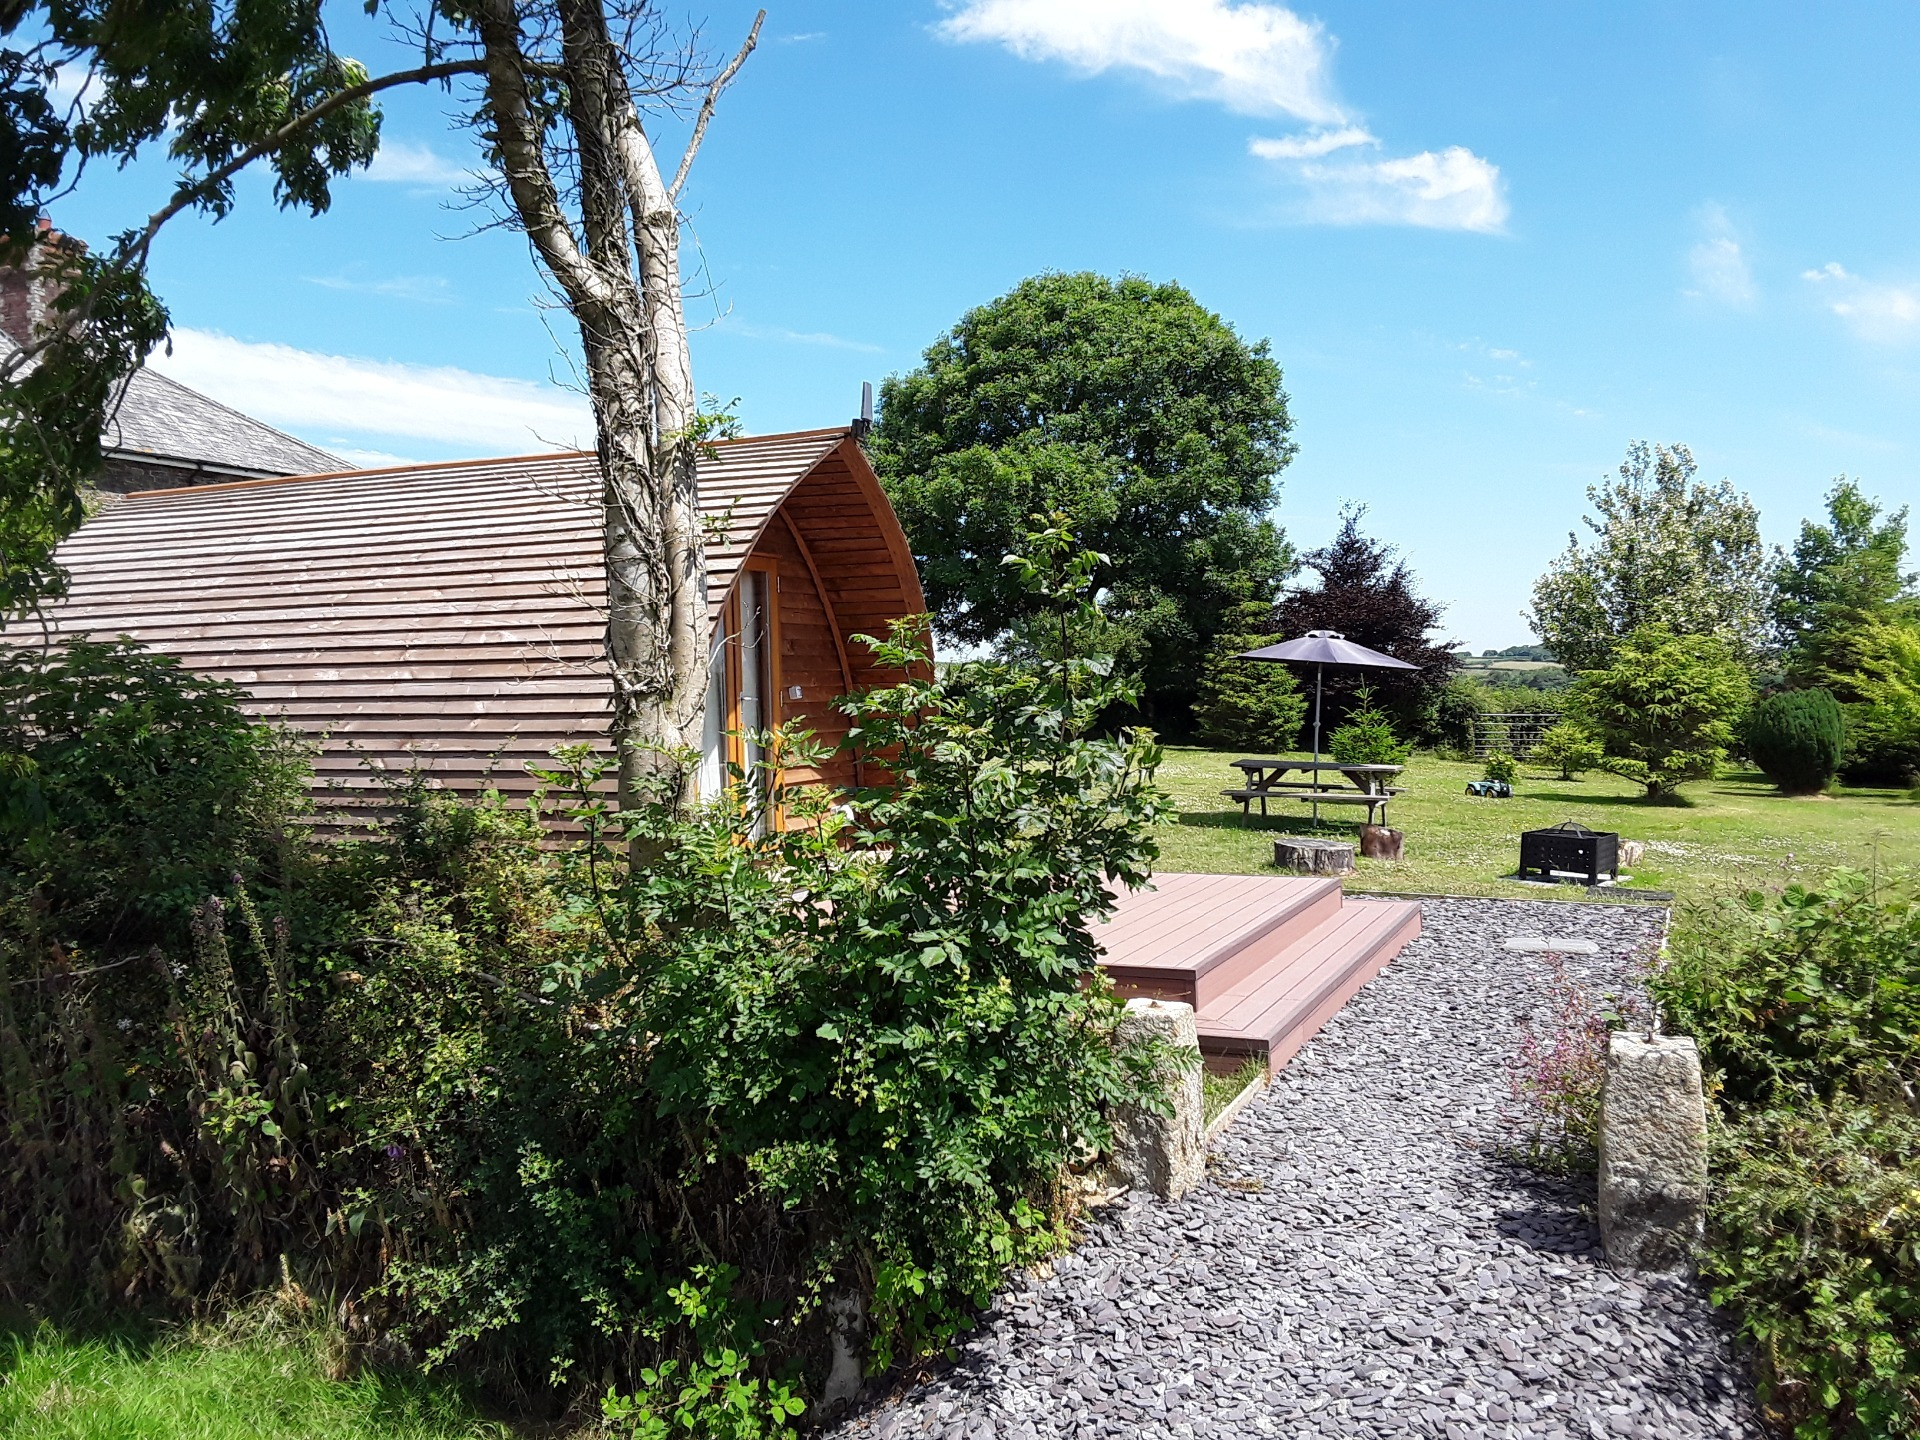 Glamping Holiday Accommodation - Glamping Cabins